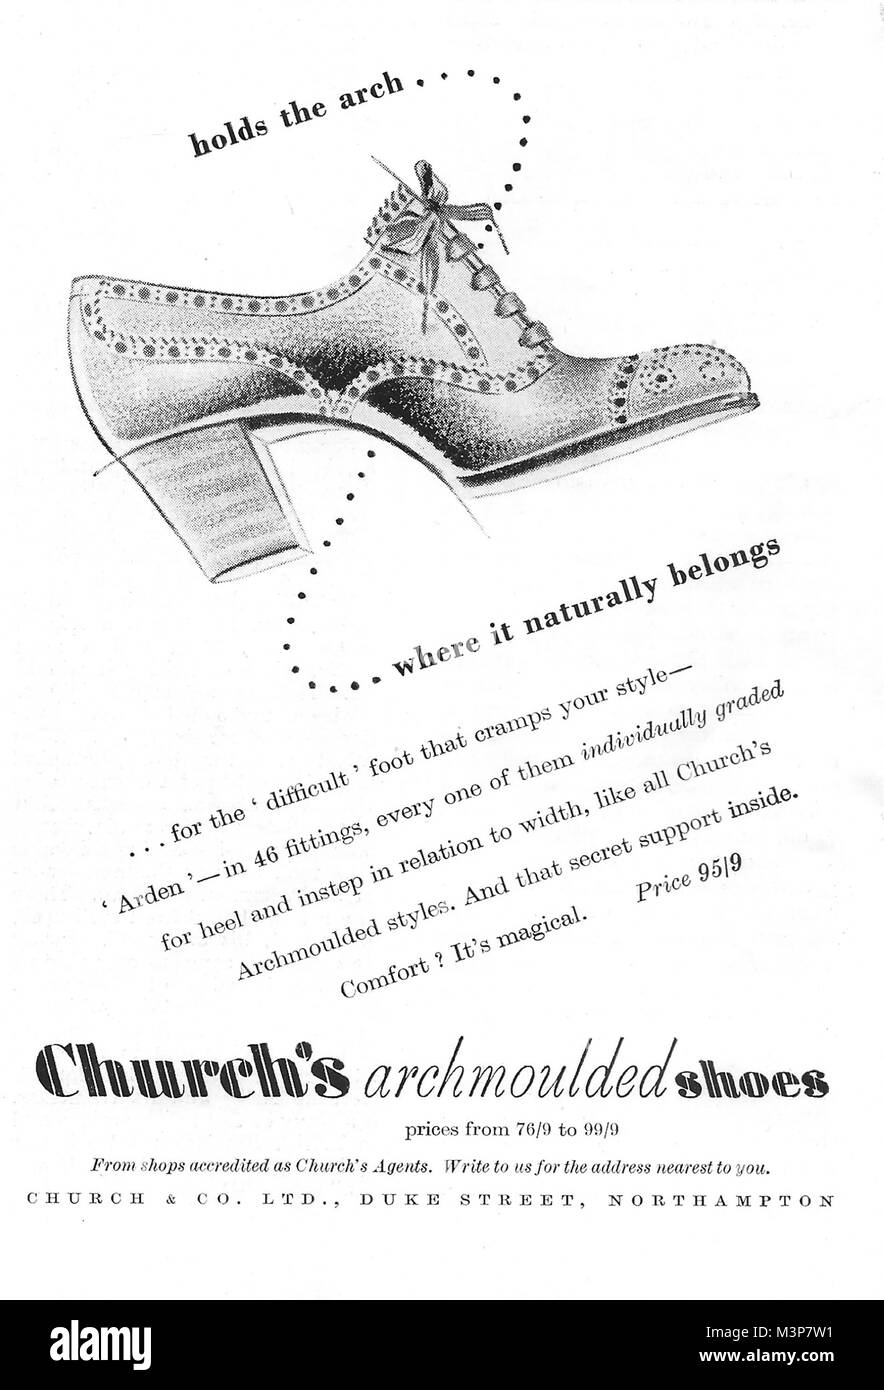 Church's arch moulded shoes advert, advertising in Country Life magazine UK 1951 - Stock Image